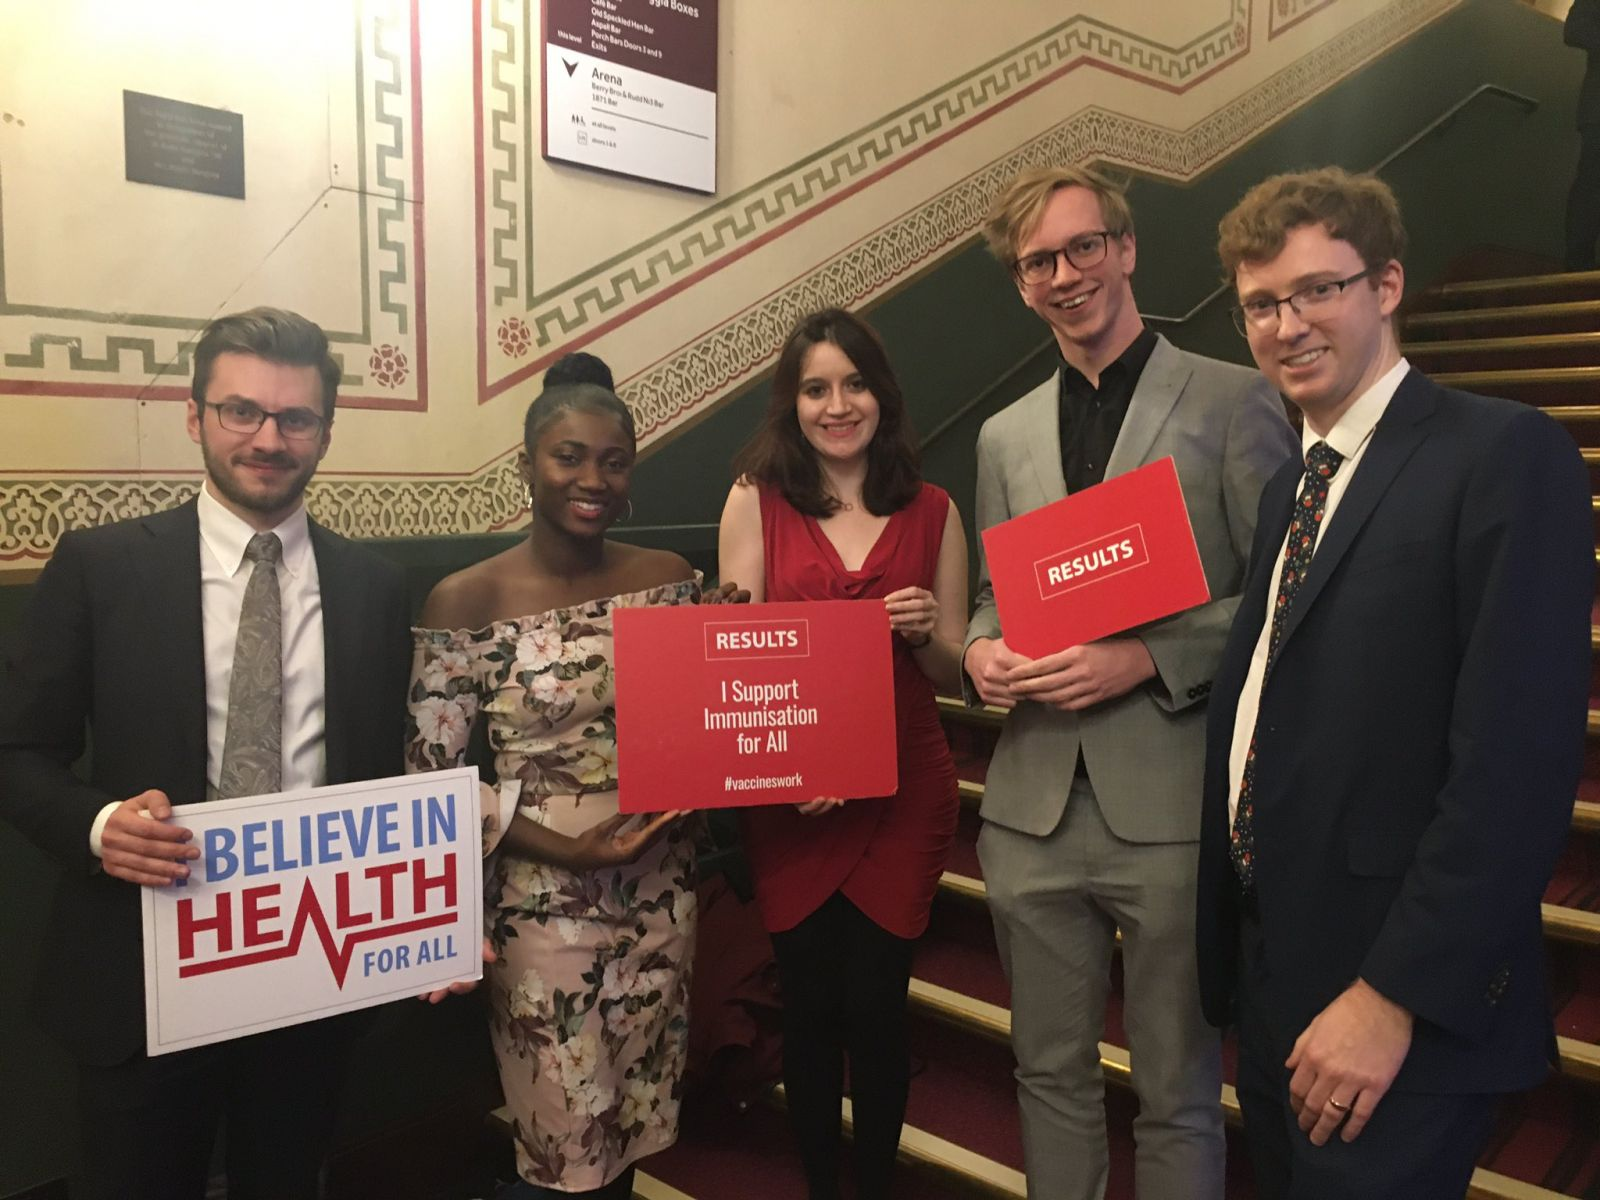 RESULTS London group at the Global Citizen Prize